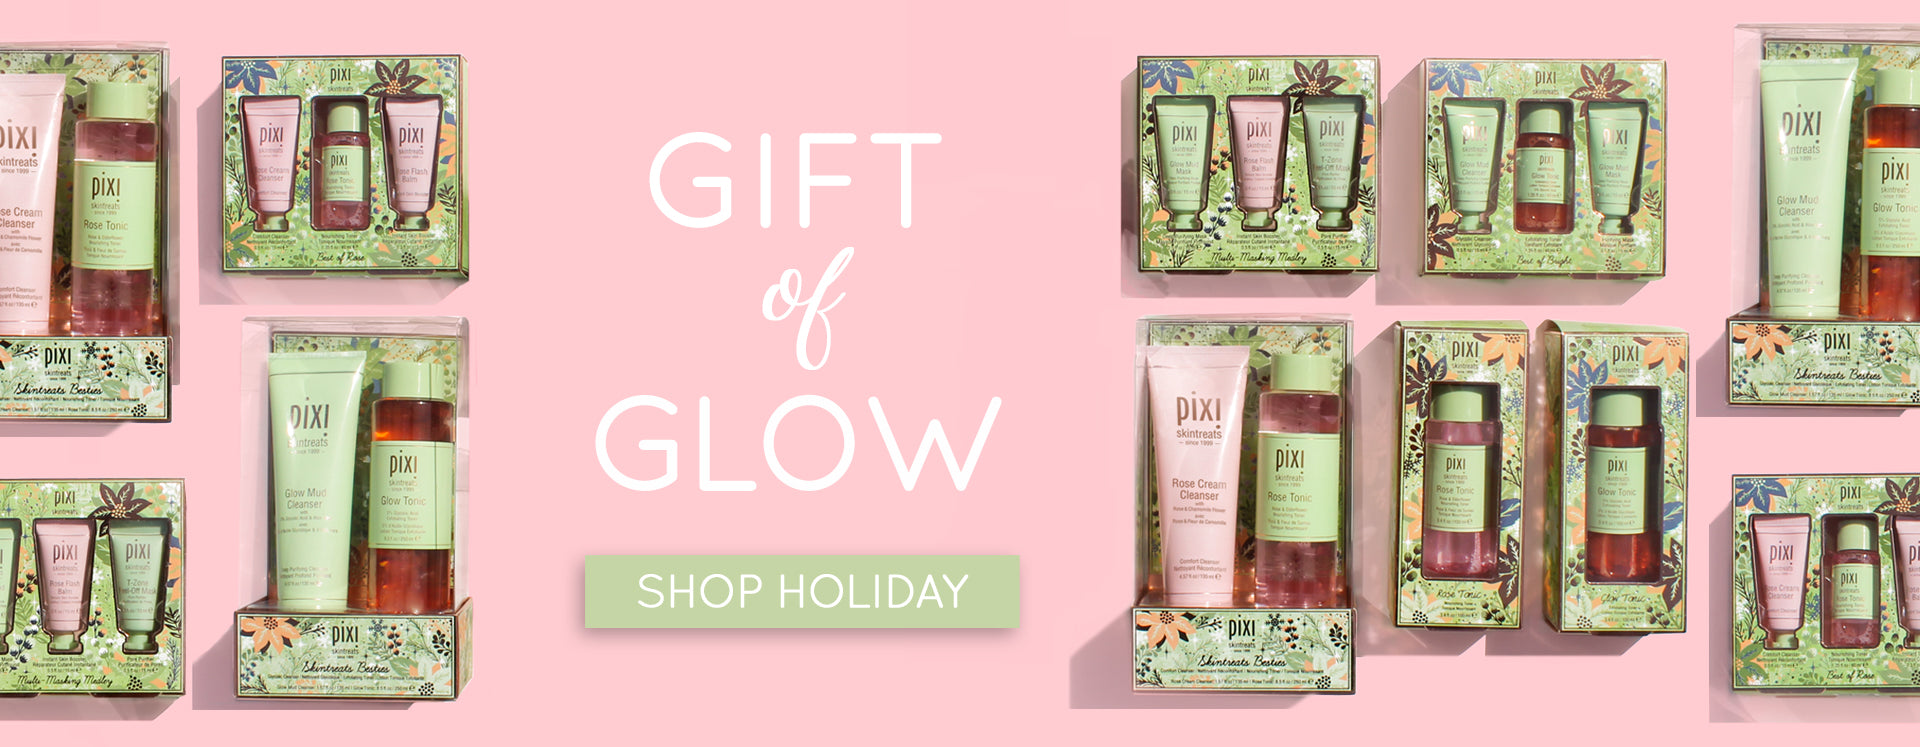 Pixi Beauty Cosmetics Makeup And Products Online R 02 Pixy Moisture Lipstick 38gr